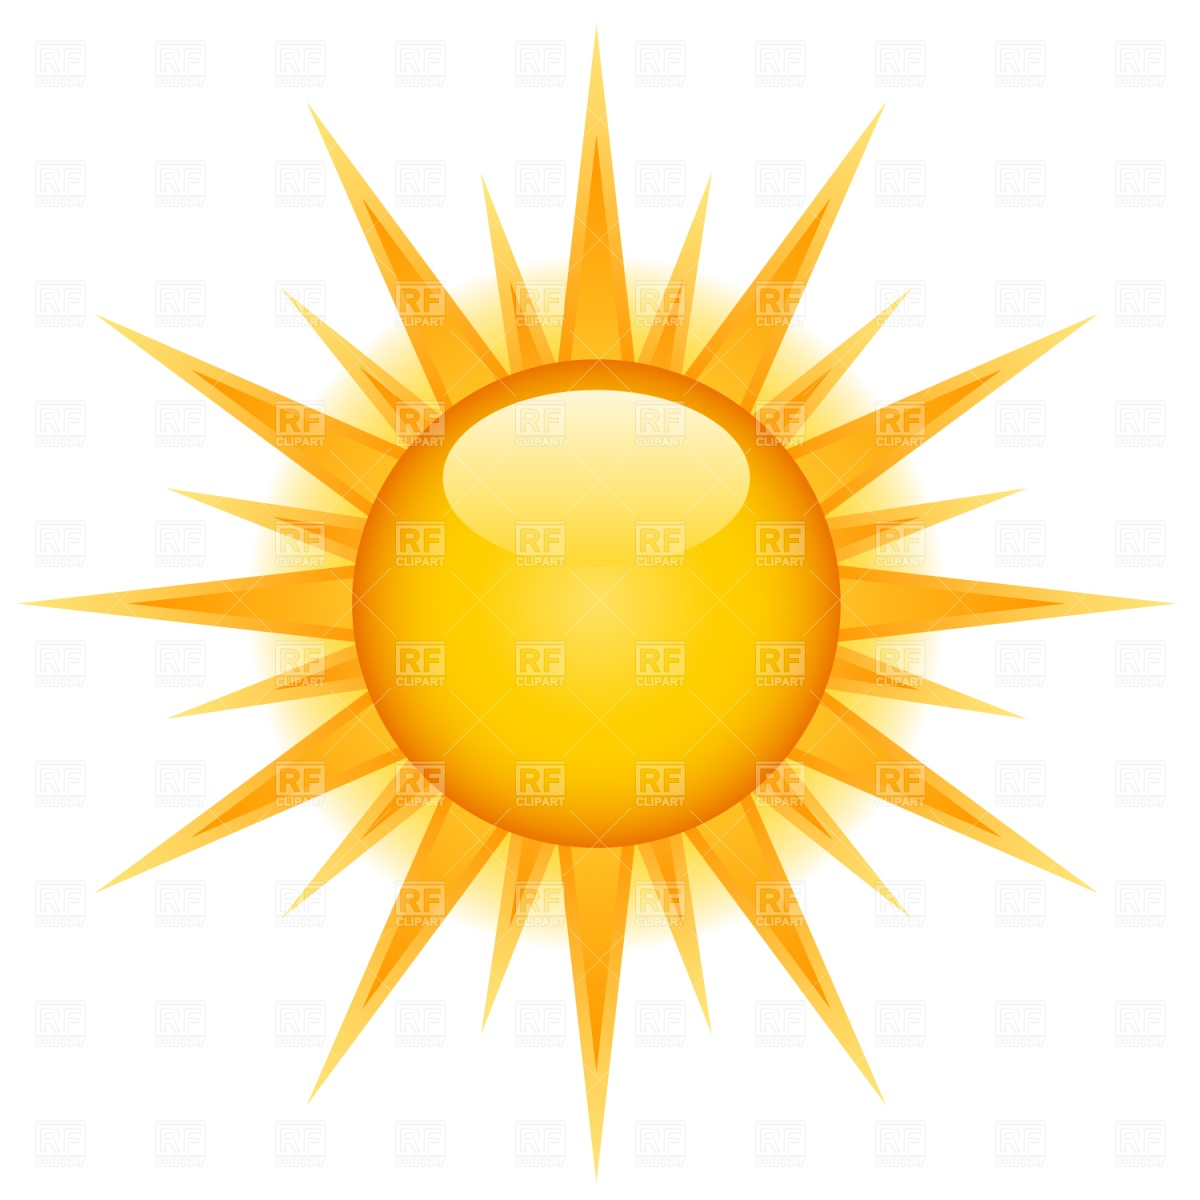 Clipart sunimages graphic royalty free download 6+ Free Sun Clipart | ClipartLook graphic royalty free download